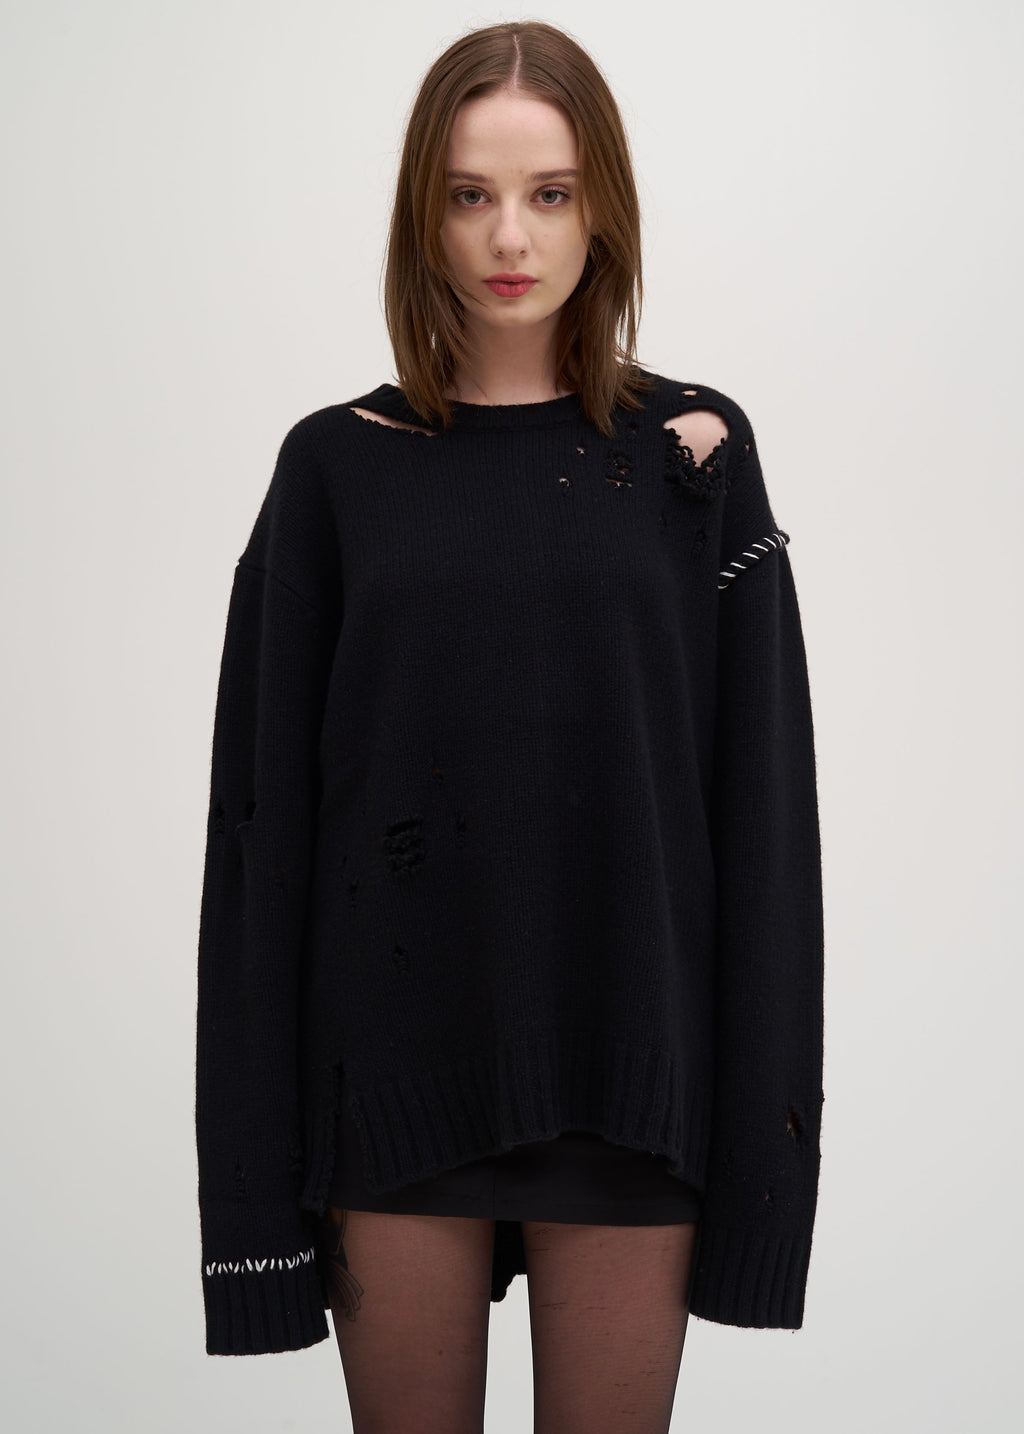 Black Damaged Knit